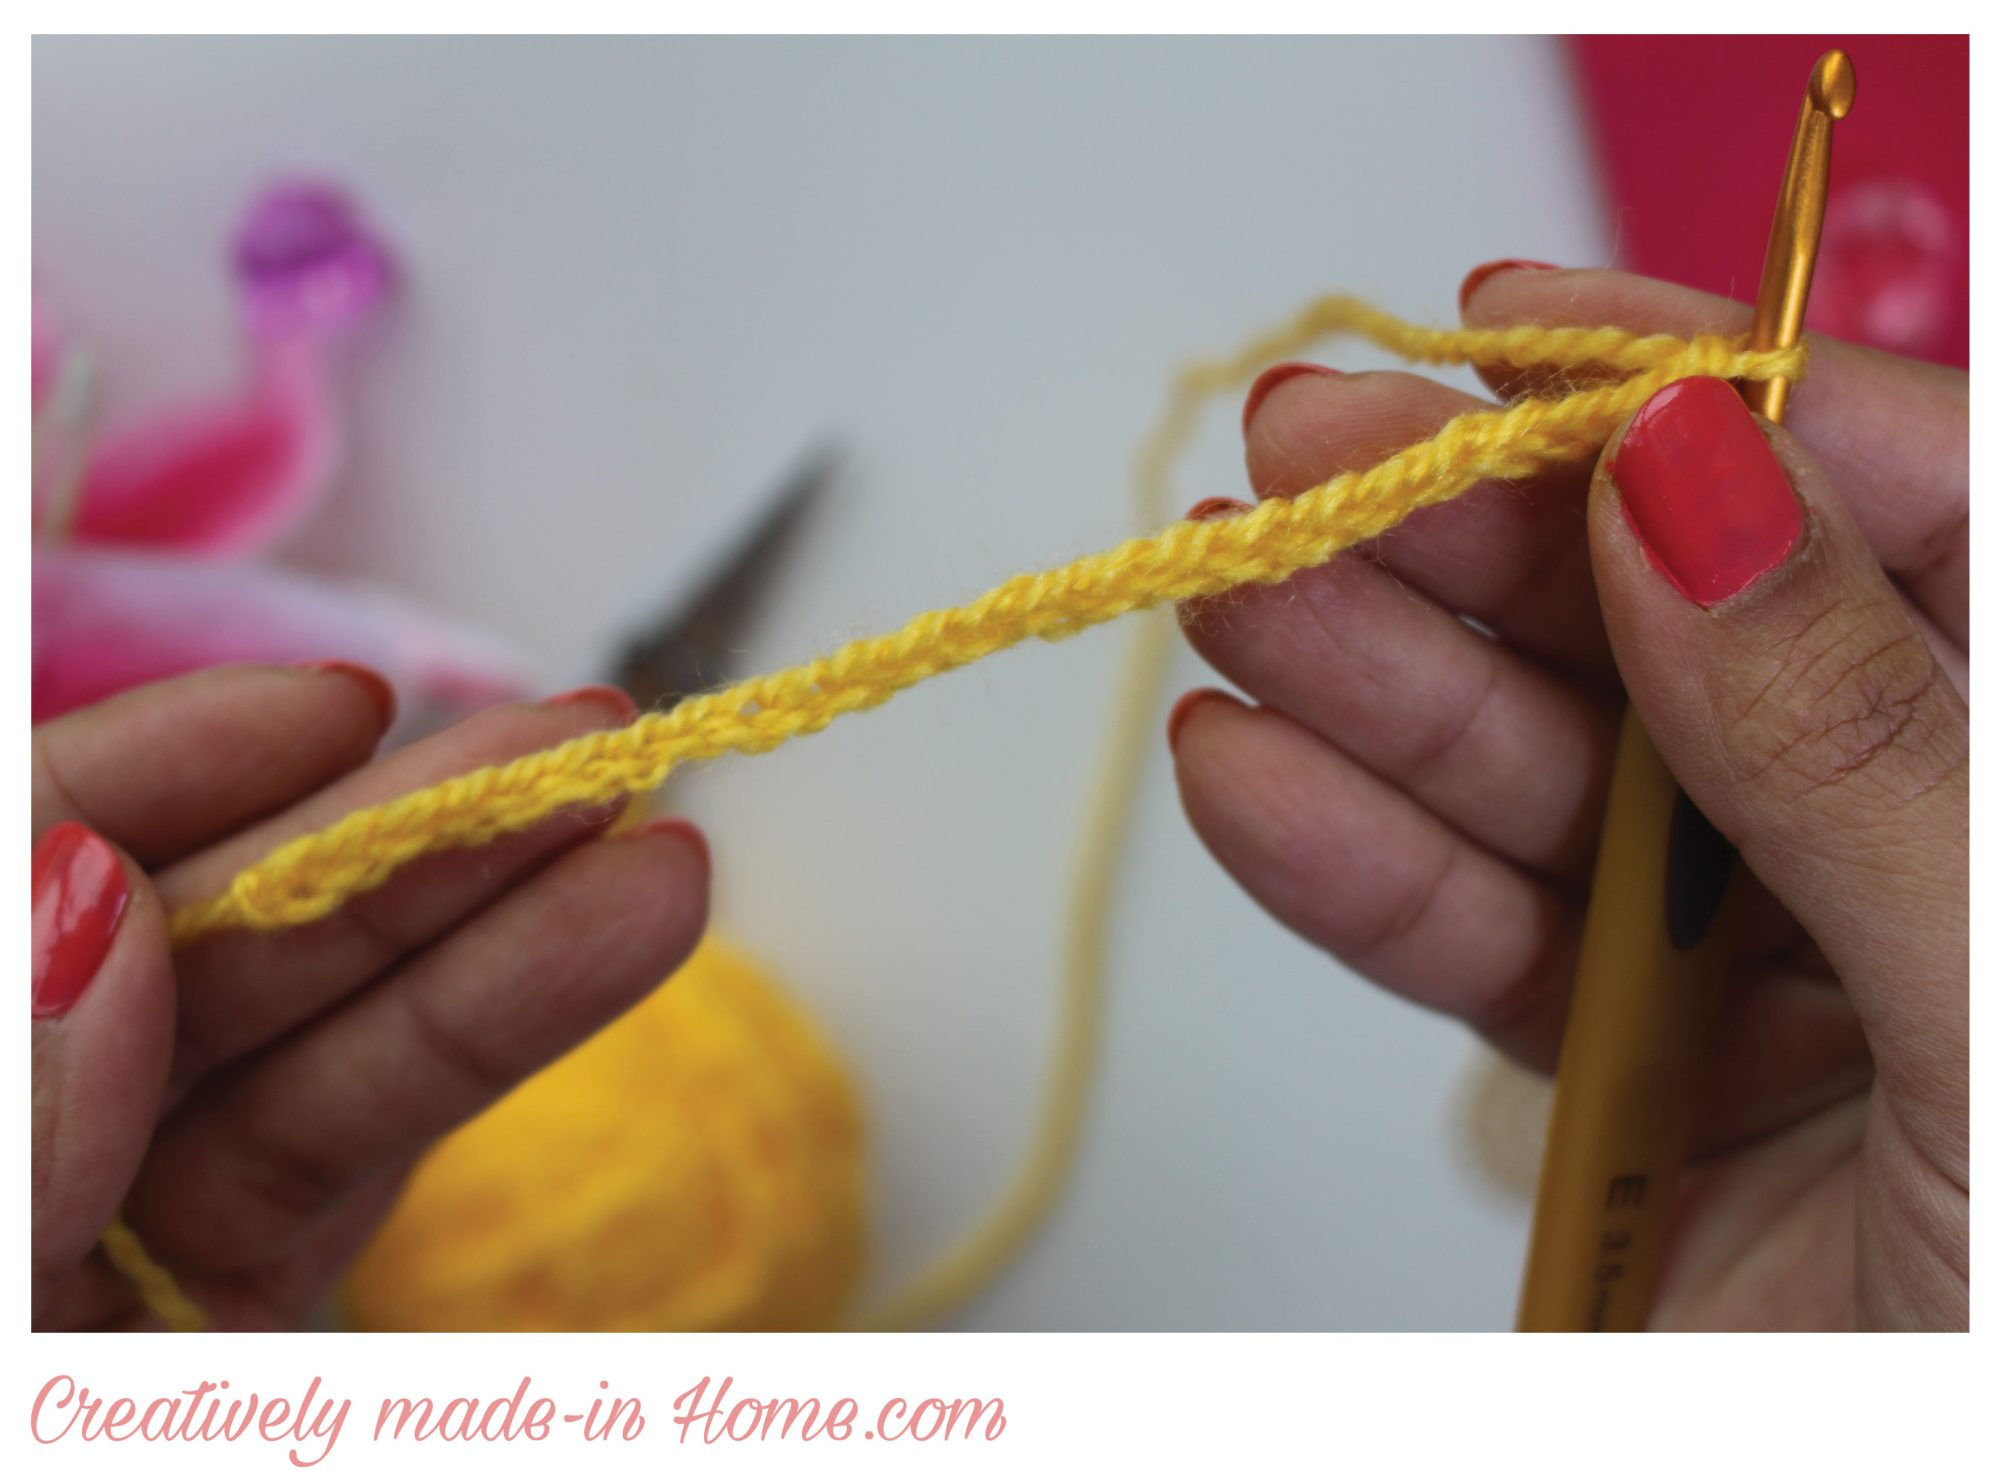 How to crochet Soft Cluster - Creatively made-in Home